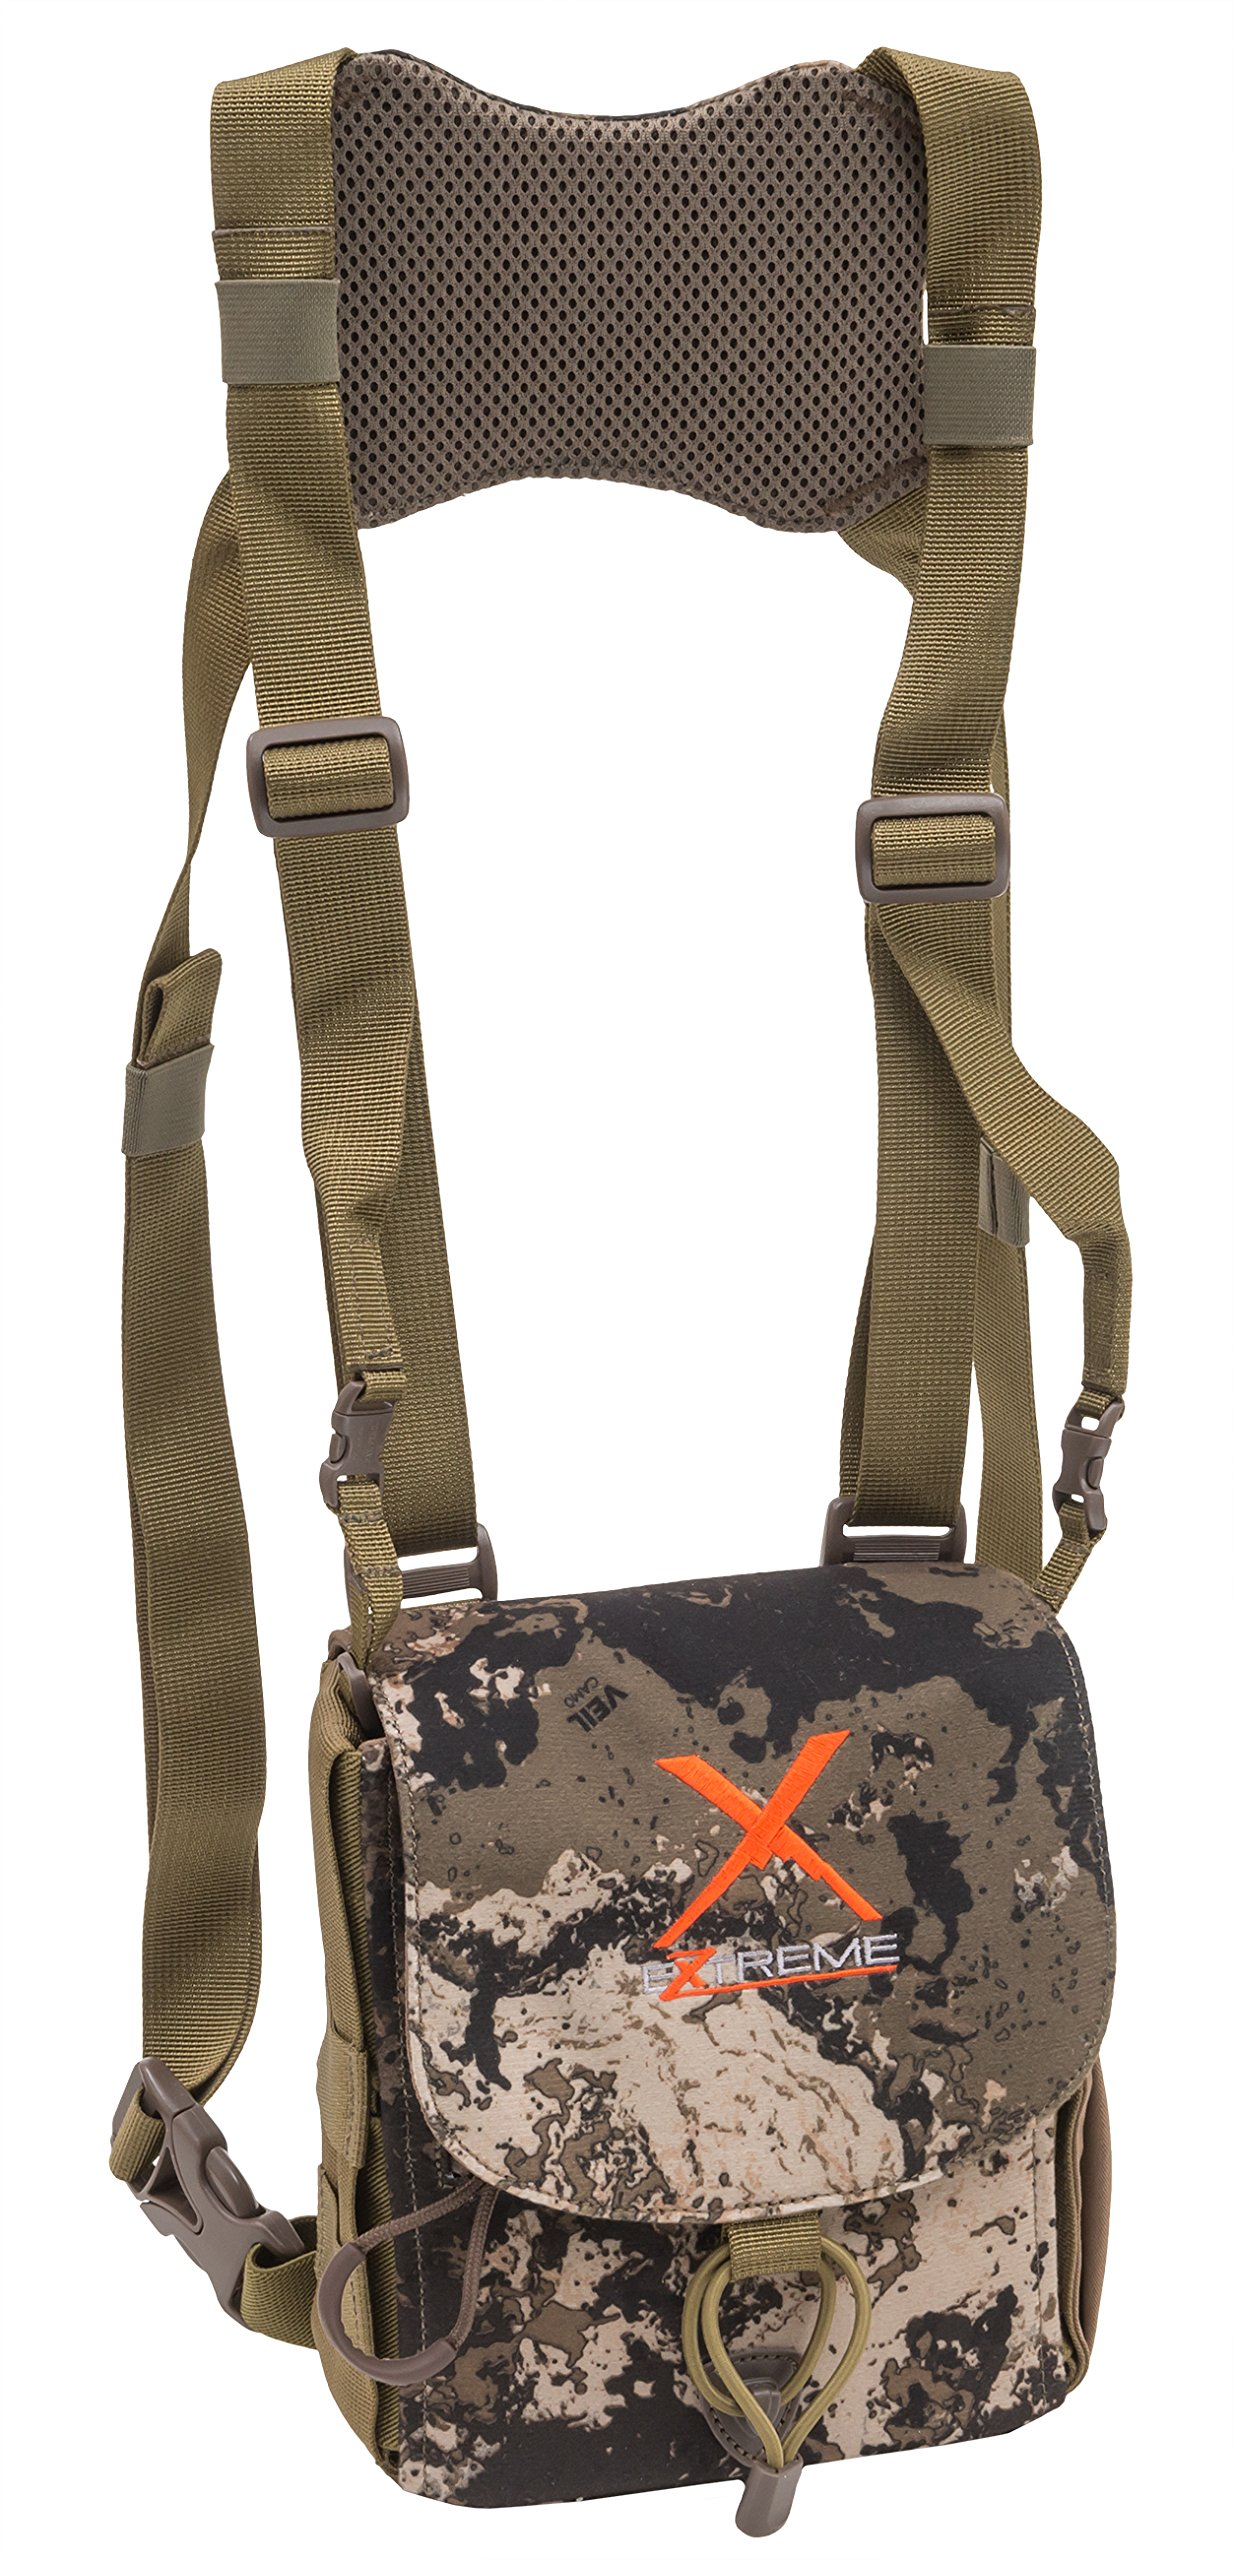 ALPS OutdoorZ Extreme Bino Harness X, Wideland by ALPS OutdoorZ (Image #1)